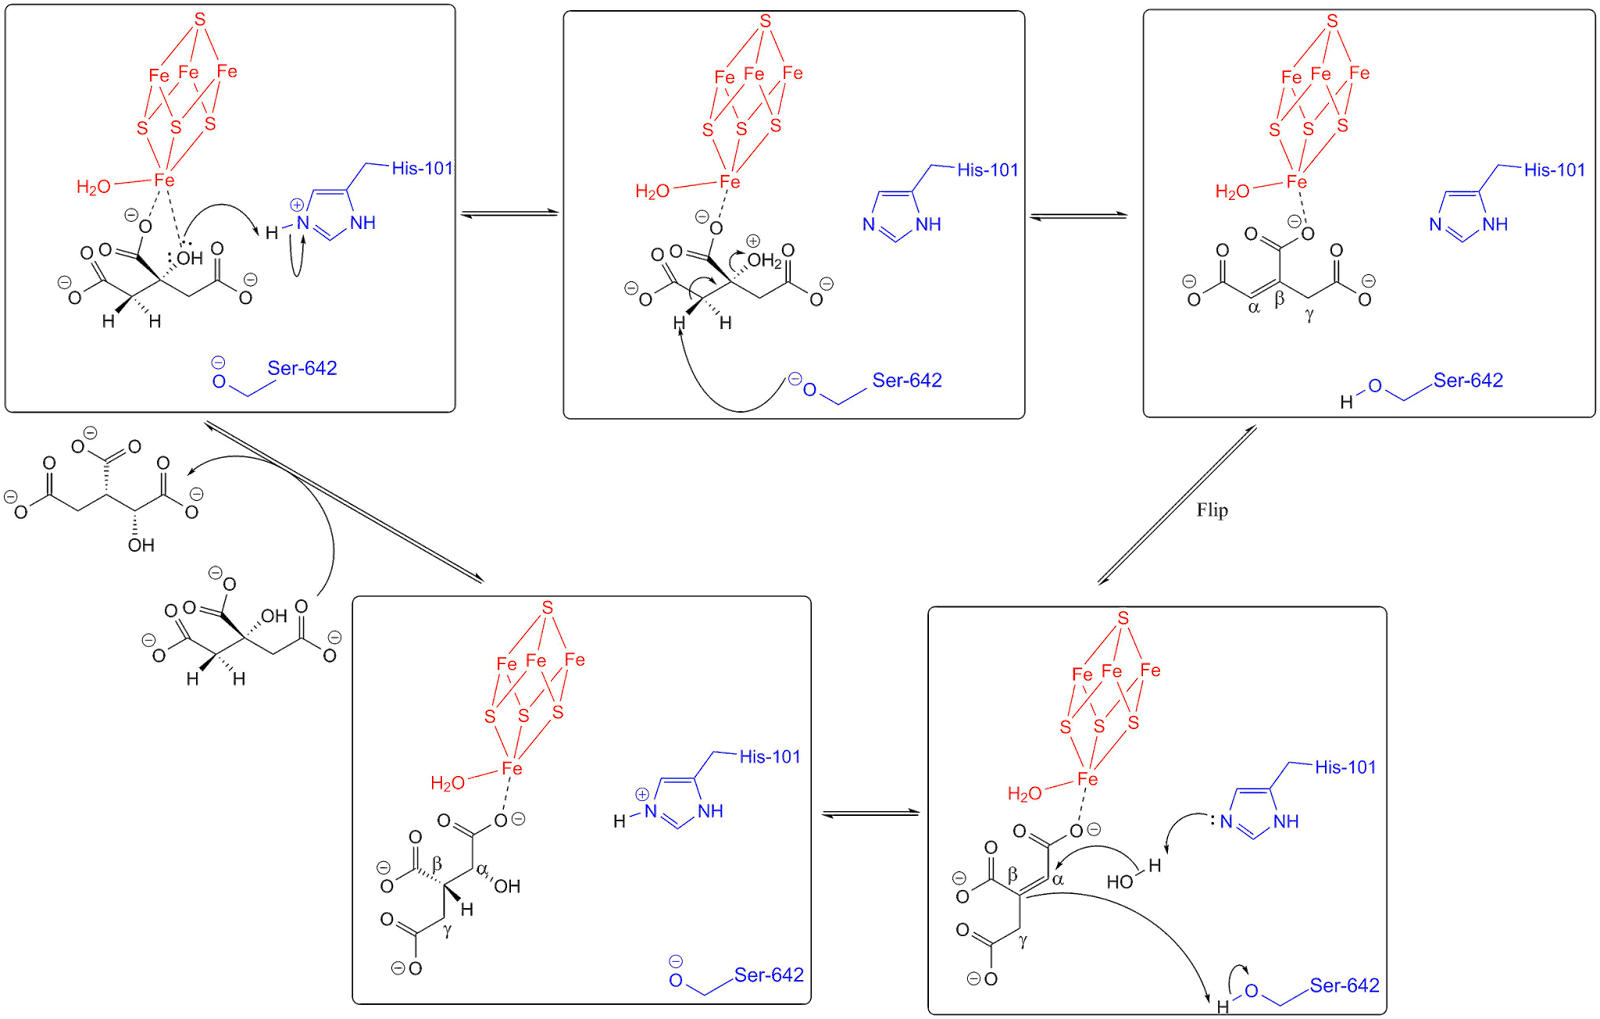 Decoding krebs cycle i citrate 6c to succinyl coa 4c the enzyme mechanisms at aconitase active site for isomerisation of citrate to isocitrate pooptronica Image collections